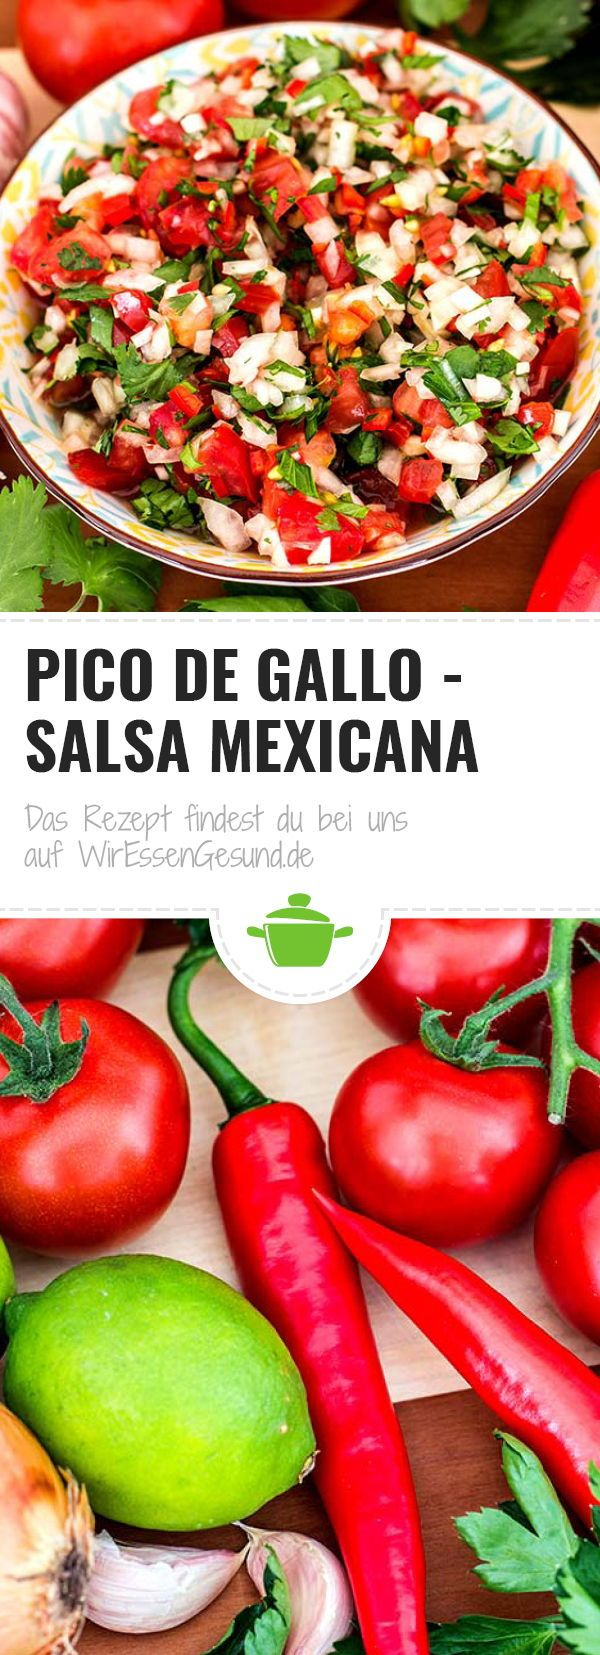 Pico de Gallo – Salsa Mexicana #mexicanfoodrecipes